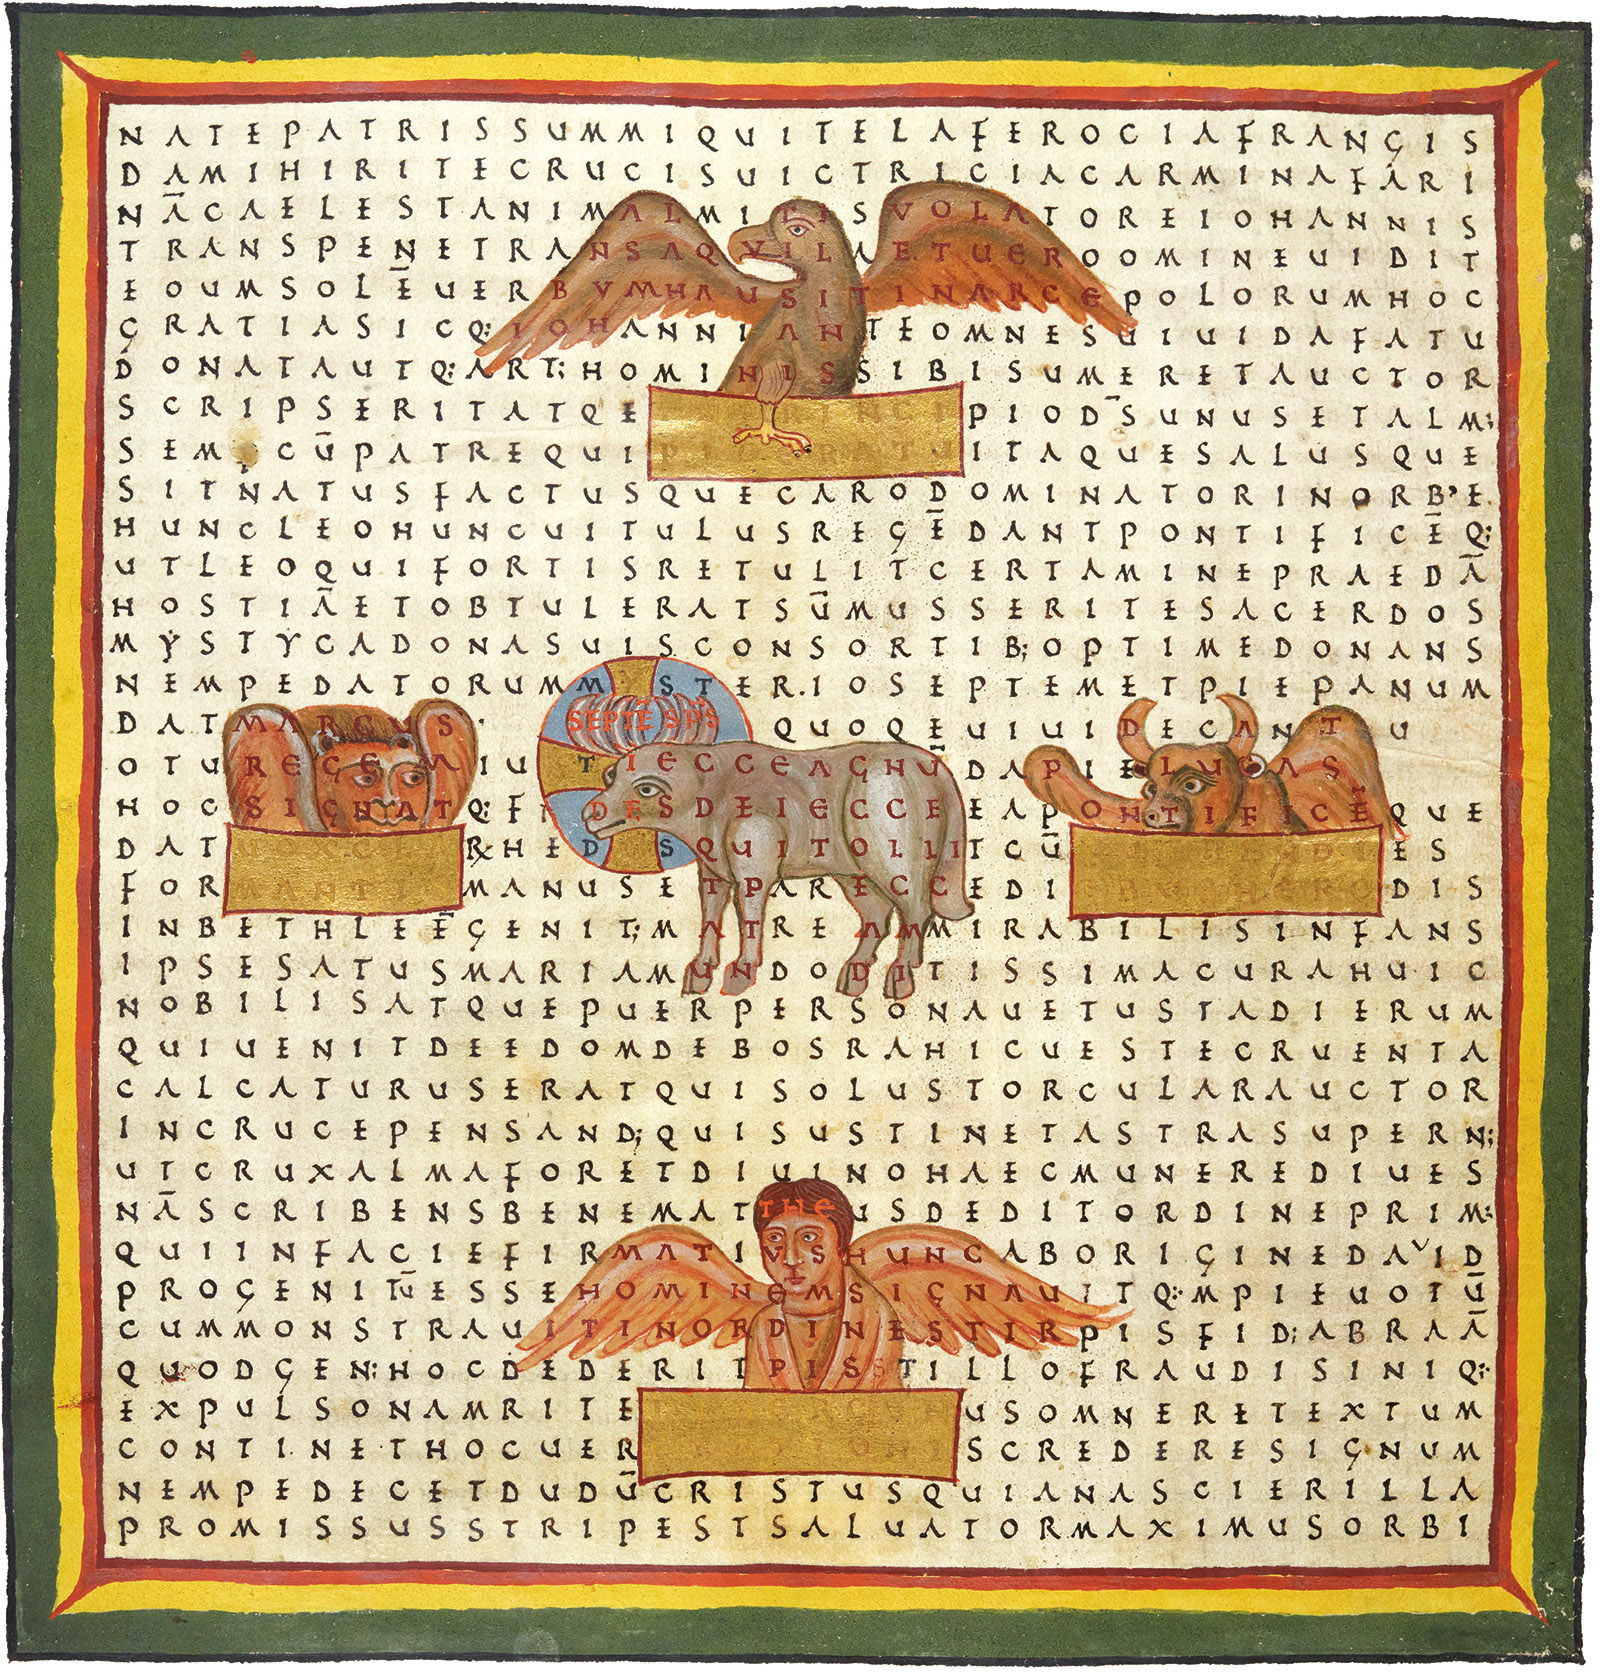 grid poem by Hrabanus Maurus showing the Evangelists and the Lamb of God